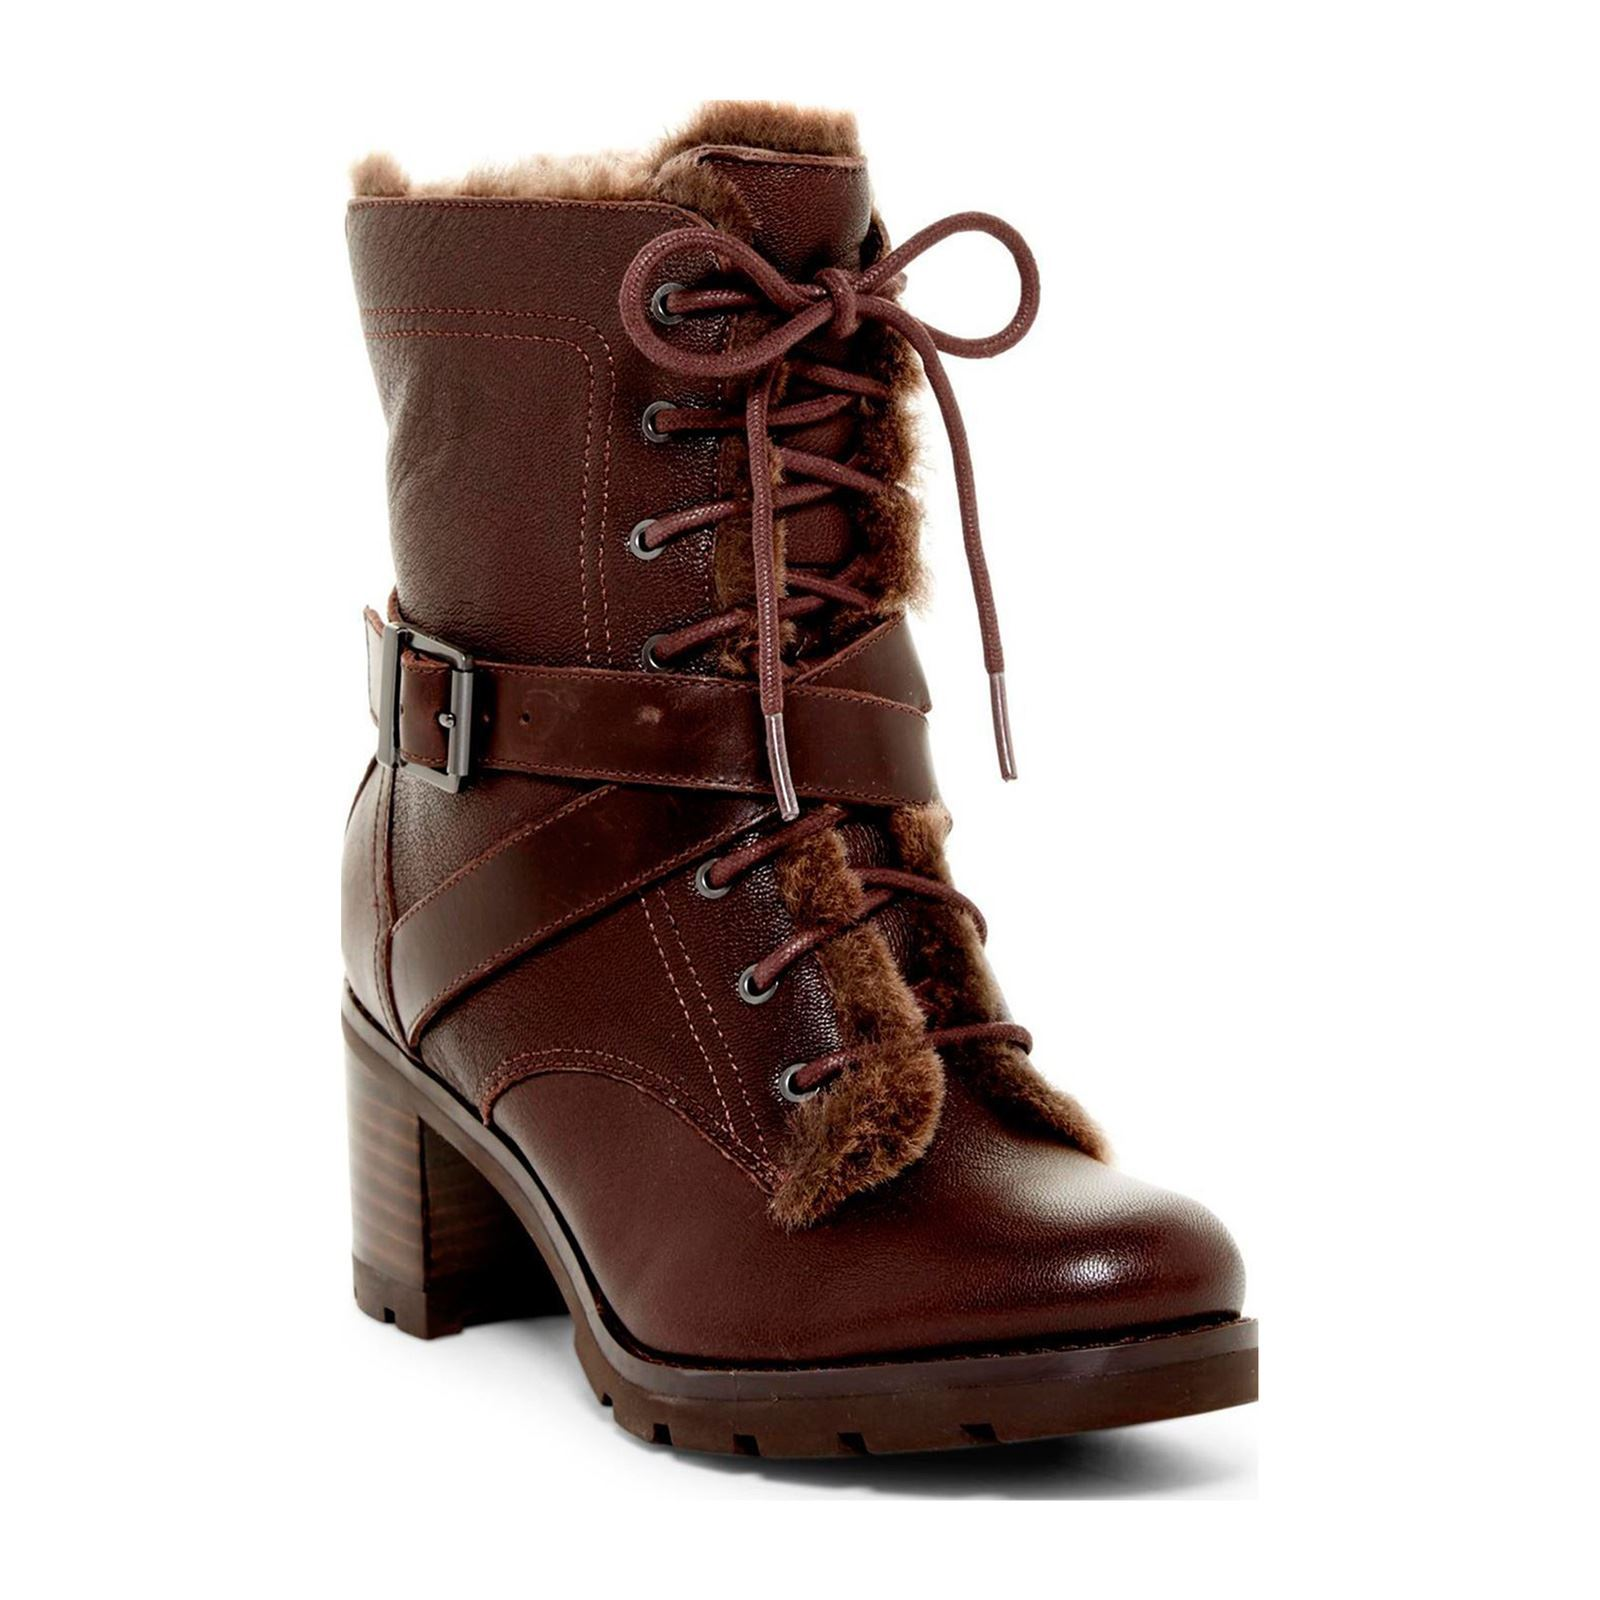 Ugg ingrid bottines fourr es en cuir marron brandalley - Code promo vente privee frais de port gratuit ...